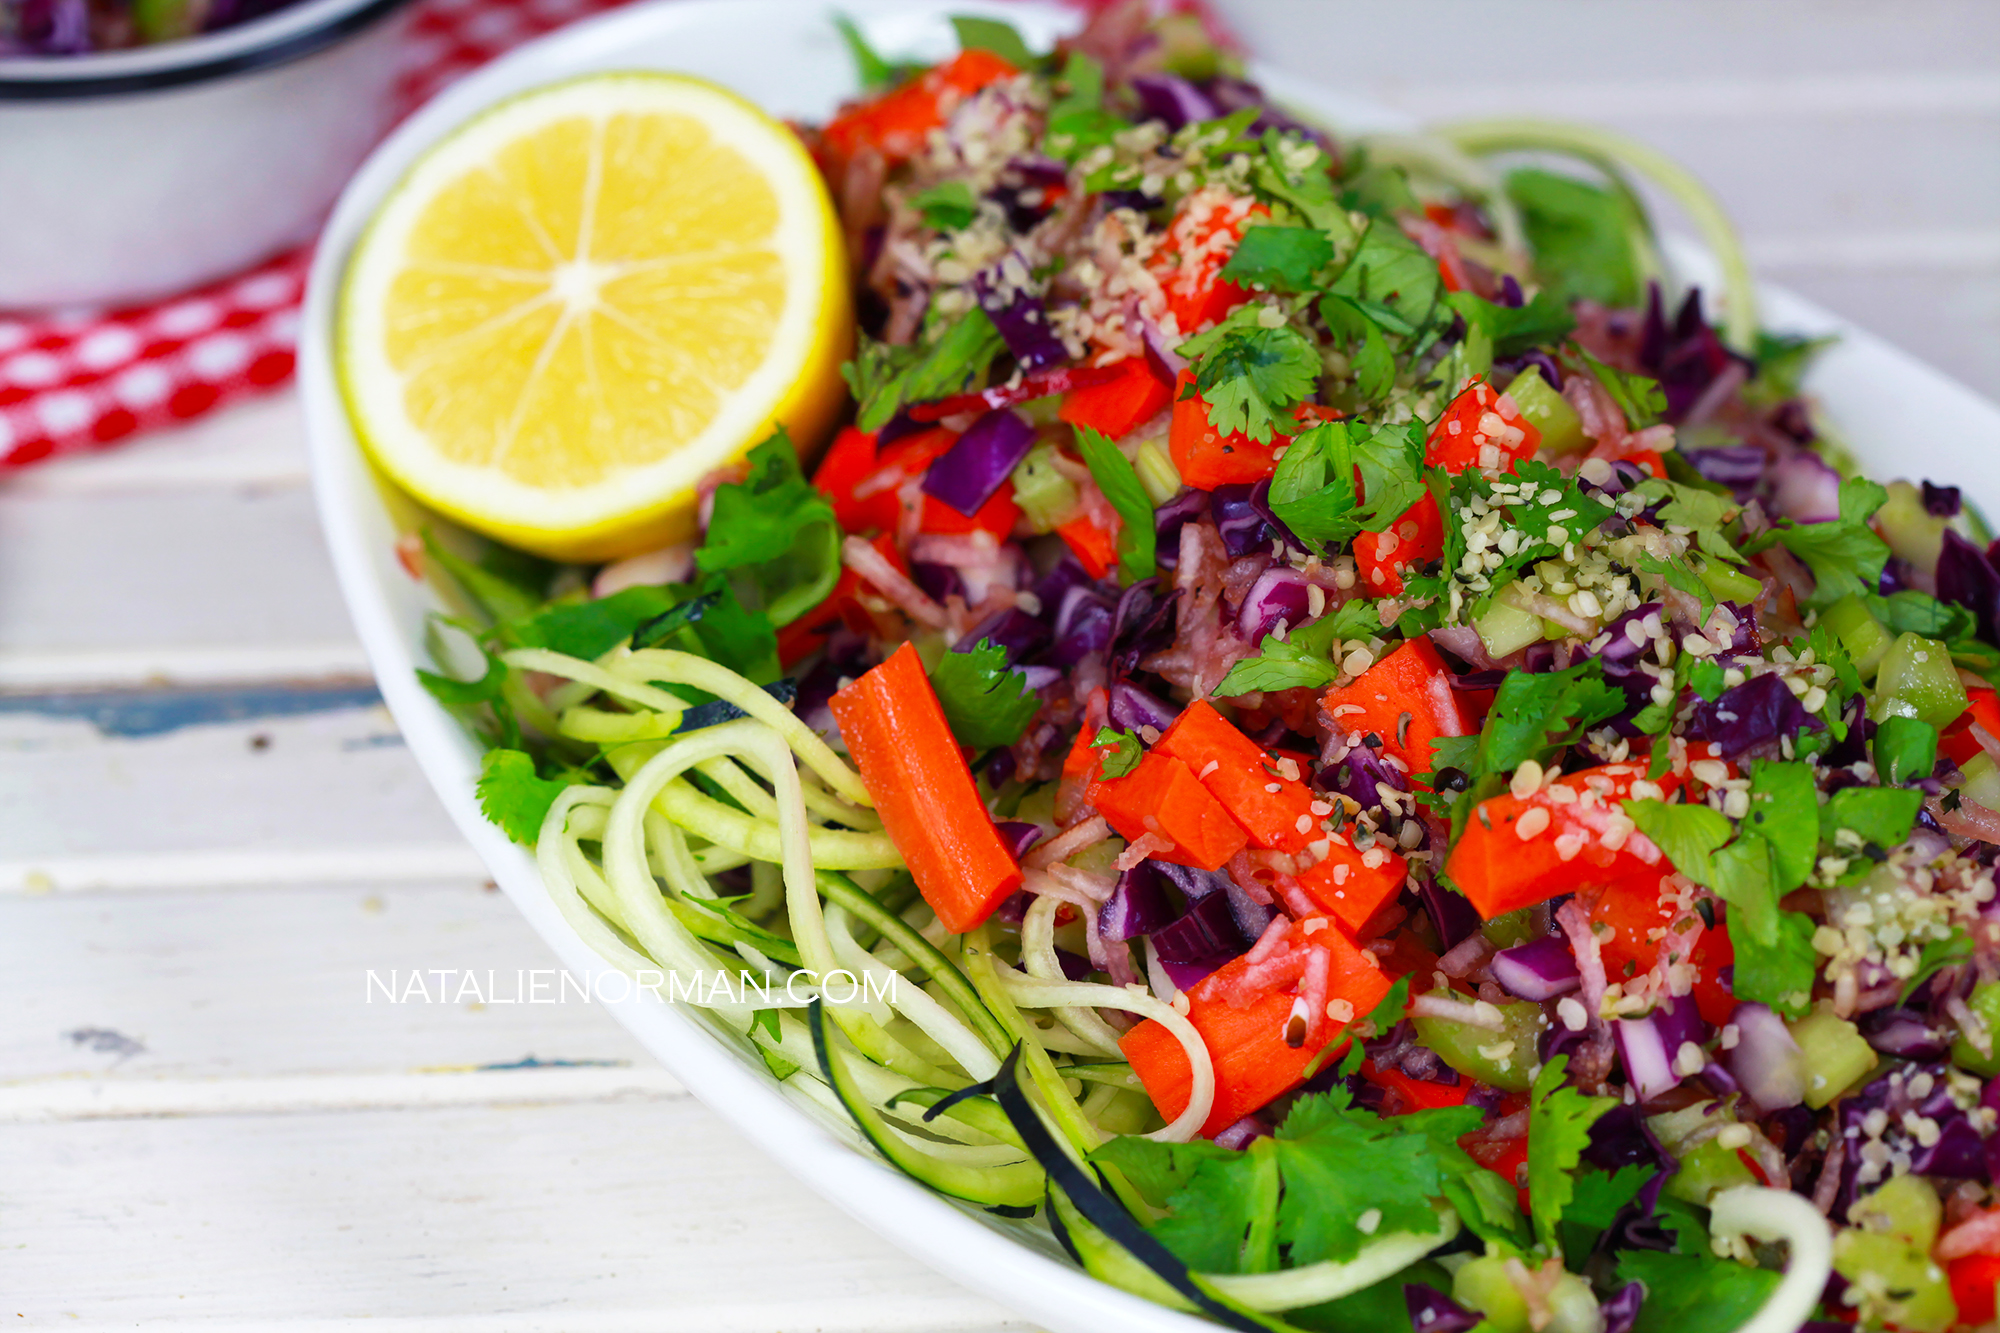 Colorful zucchini pasta raw foods on a budget natalie norman forumfinder Image collections